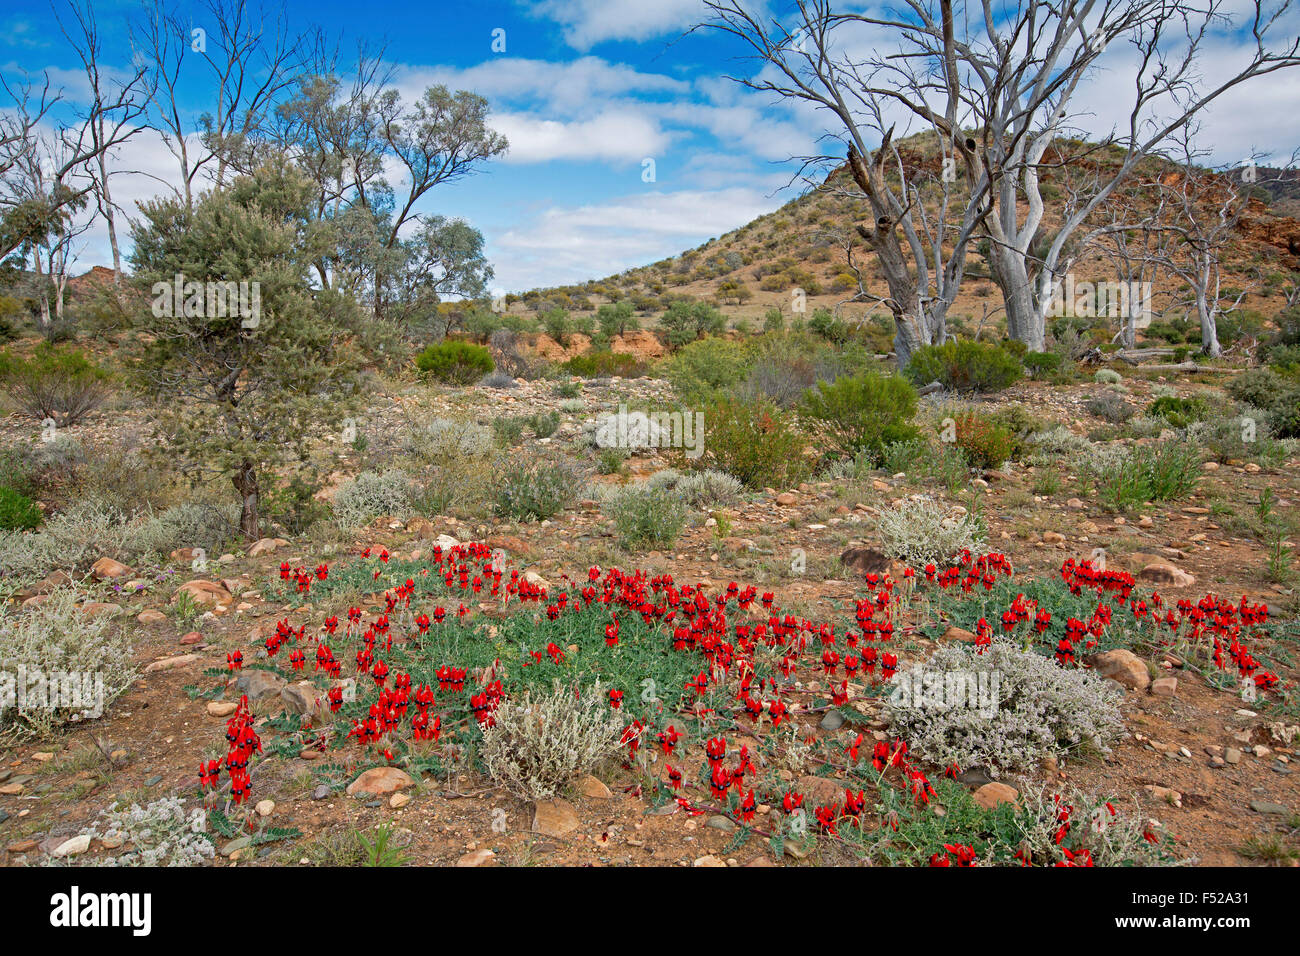 Landscape in outback Australia with carpet of spectacular red flowers of Sturt's desert pea, Swainsona formosa & Stock Photo